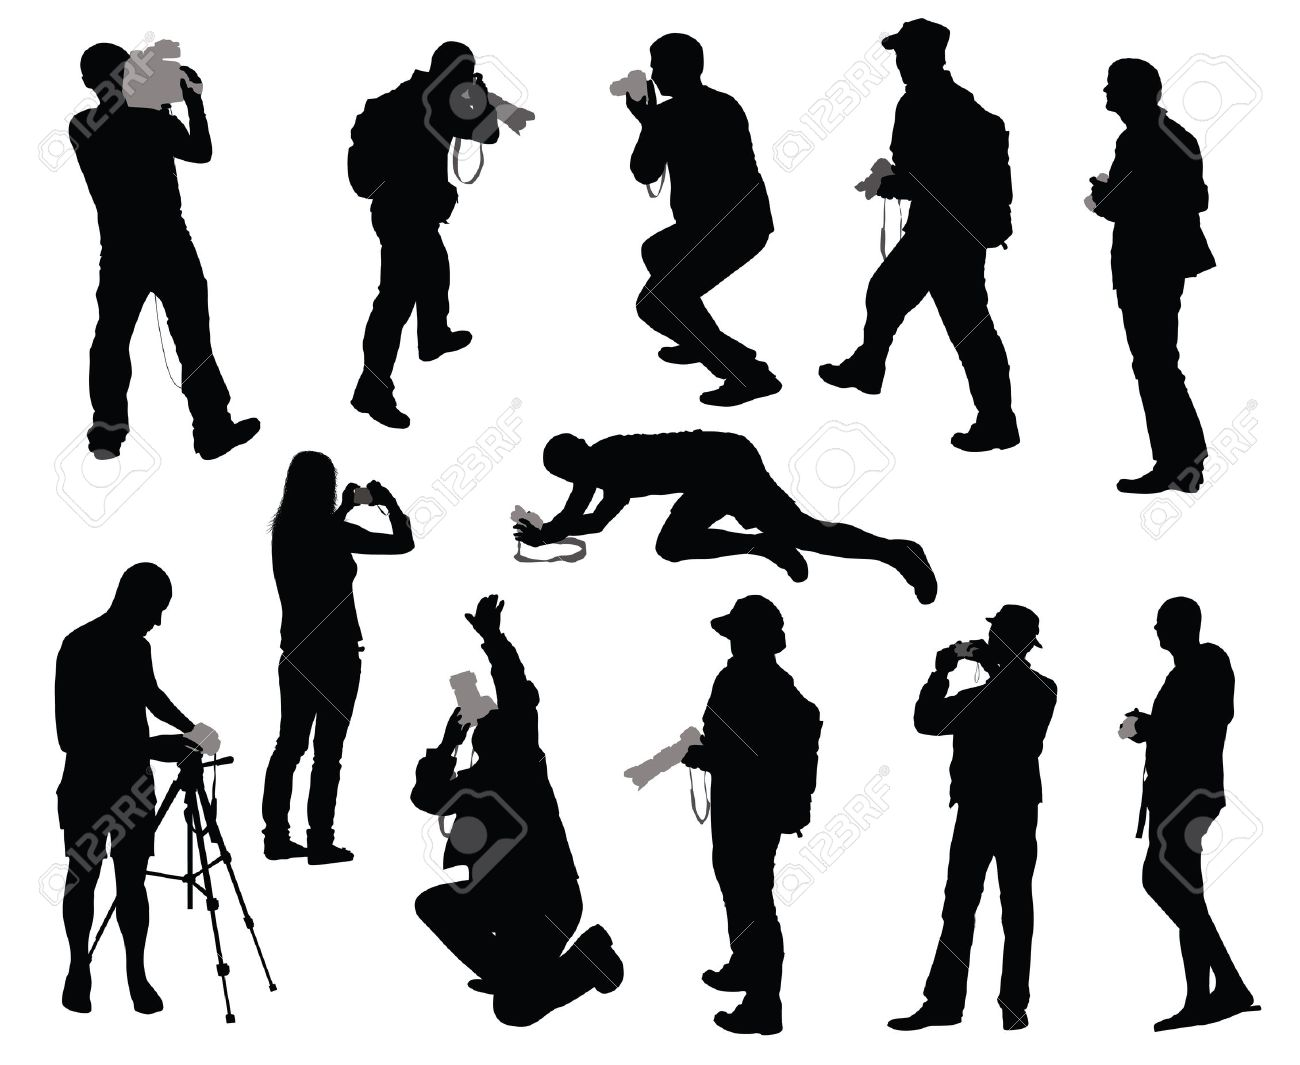 Silhouettes of people taking photos Stock Vector - 13040903